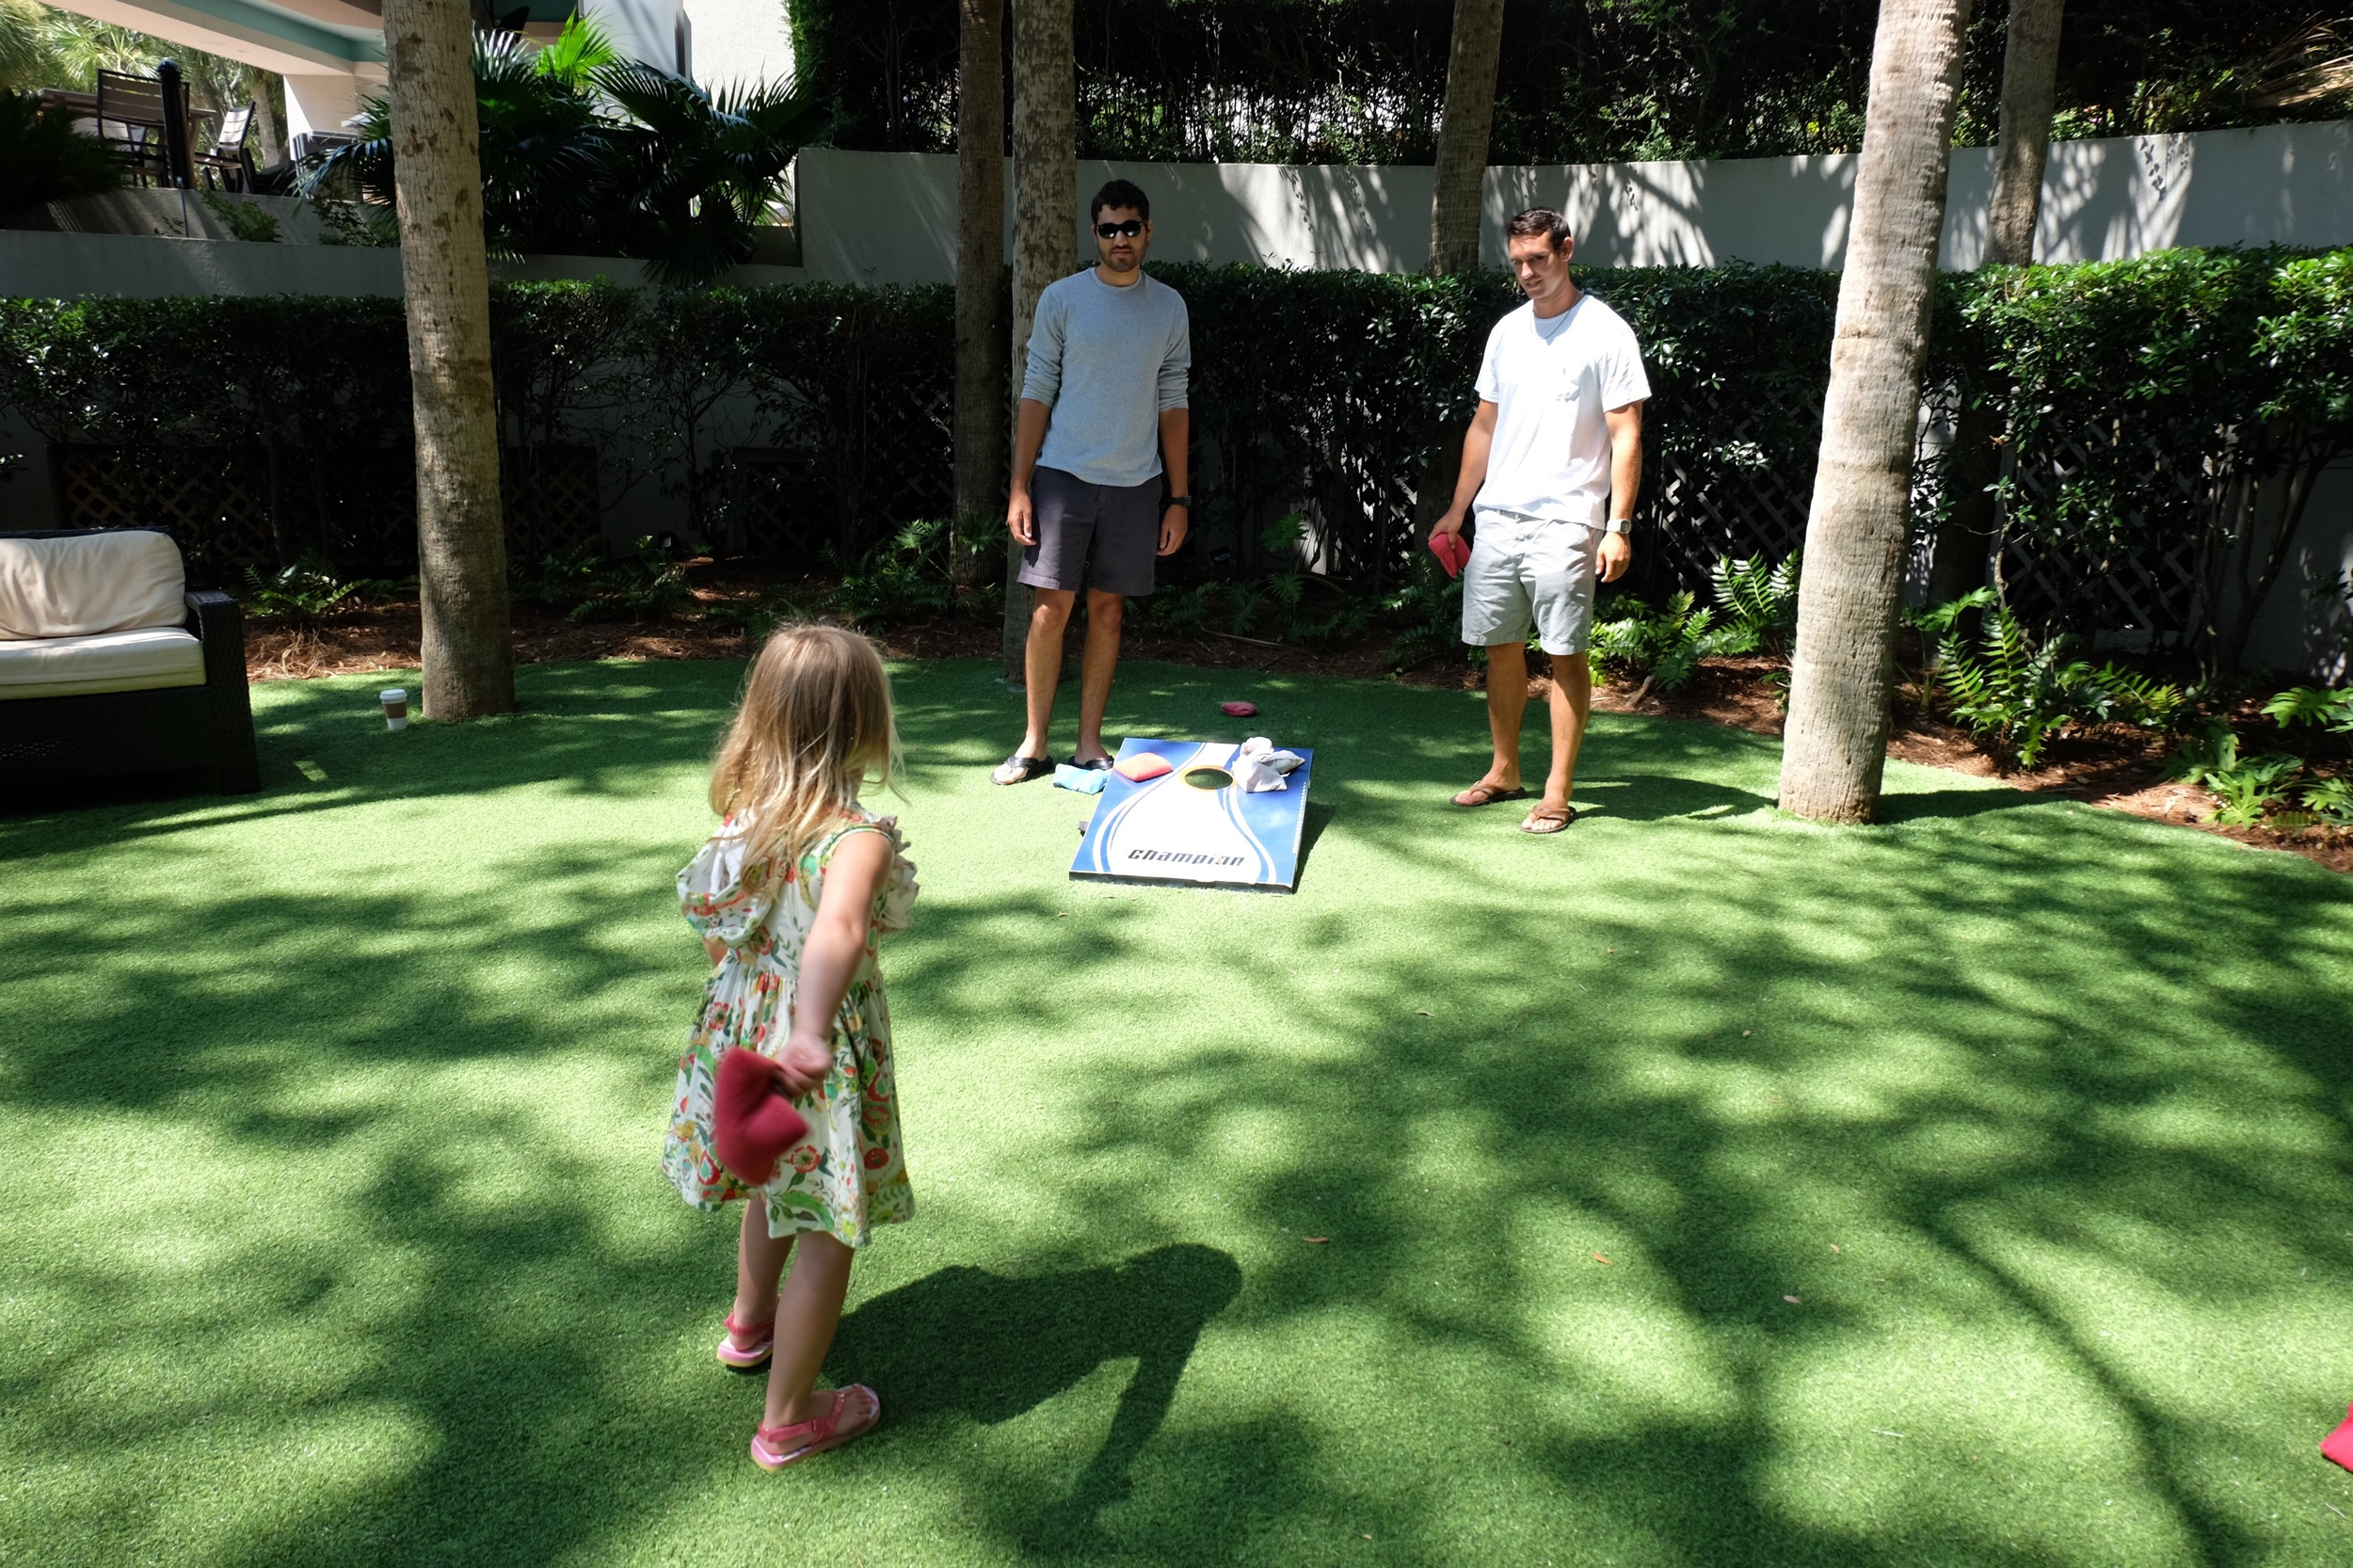 There were so many activities at the Westin, including a place where kids can play, splash contests and more fun games for kids and a gorgeous firepit, to name a few!